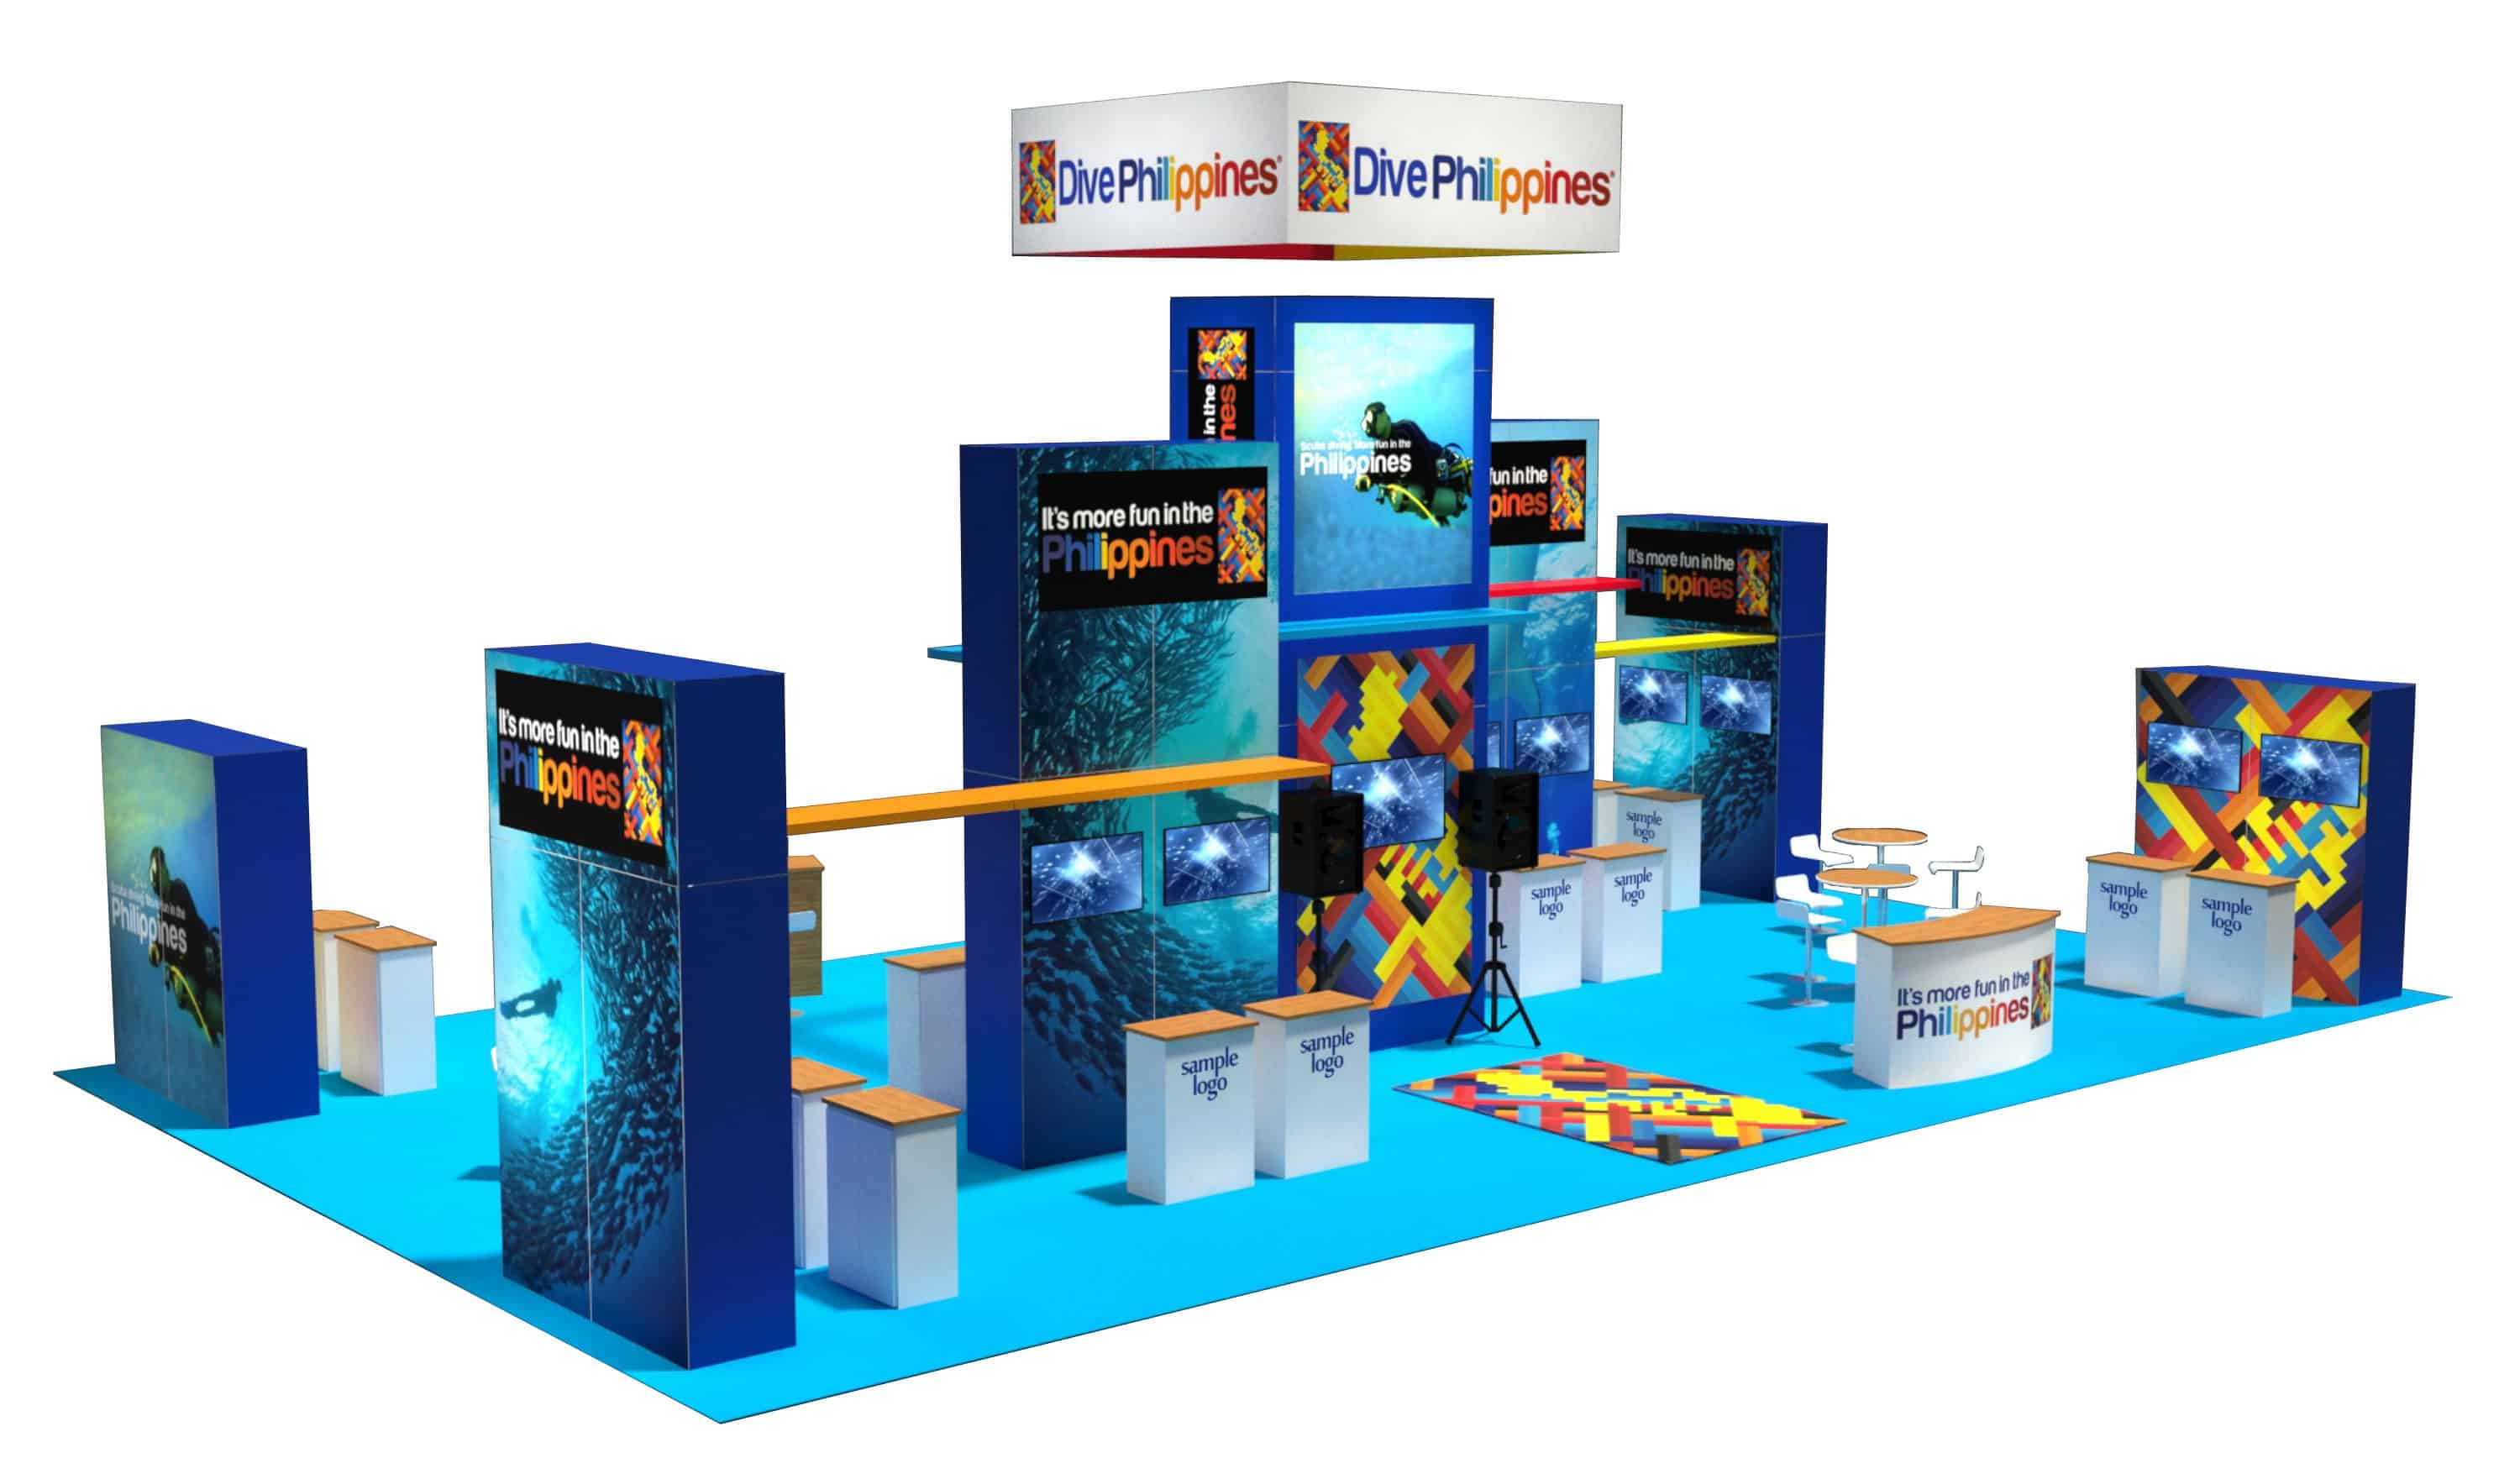 Trade Show Booth Visitors : Trade show booth rental philippines tourism